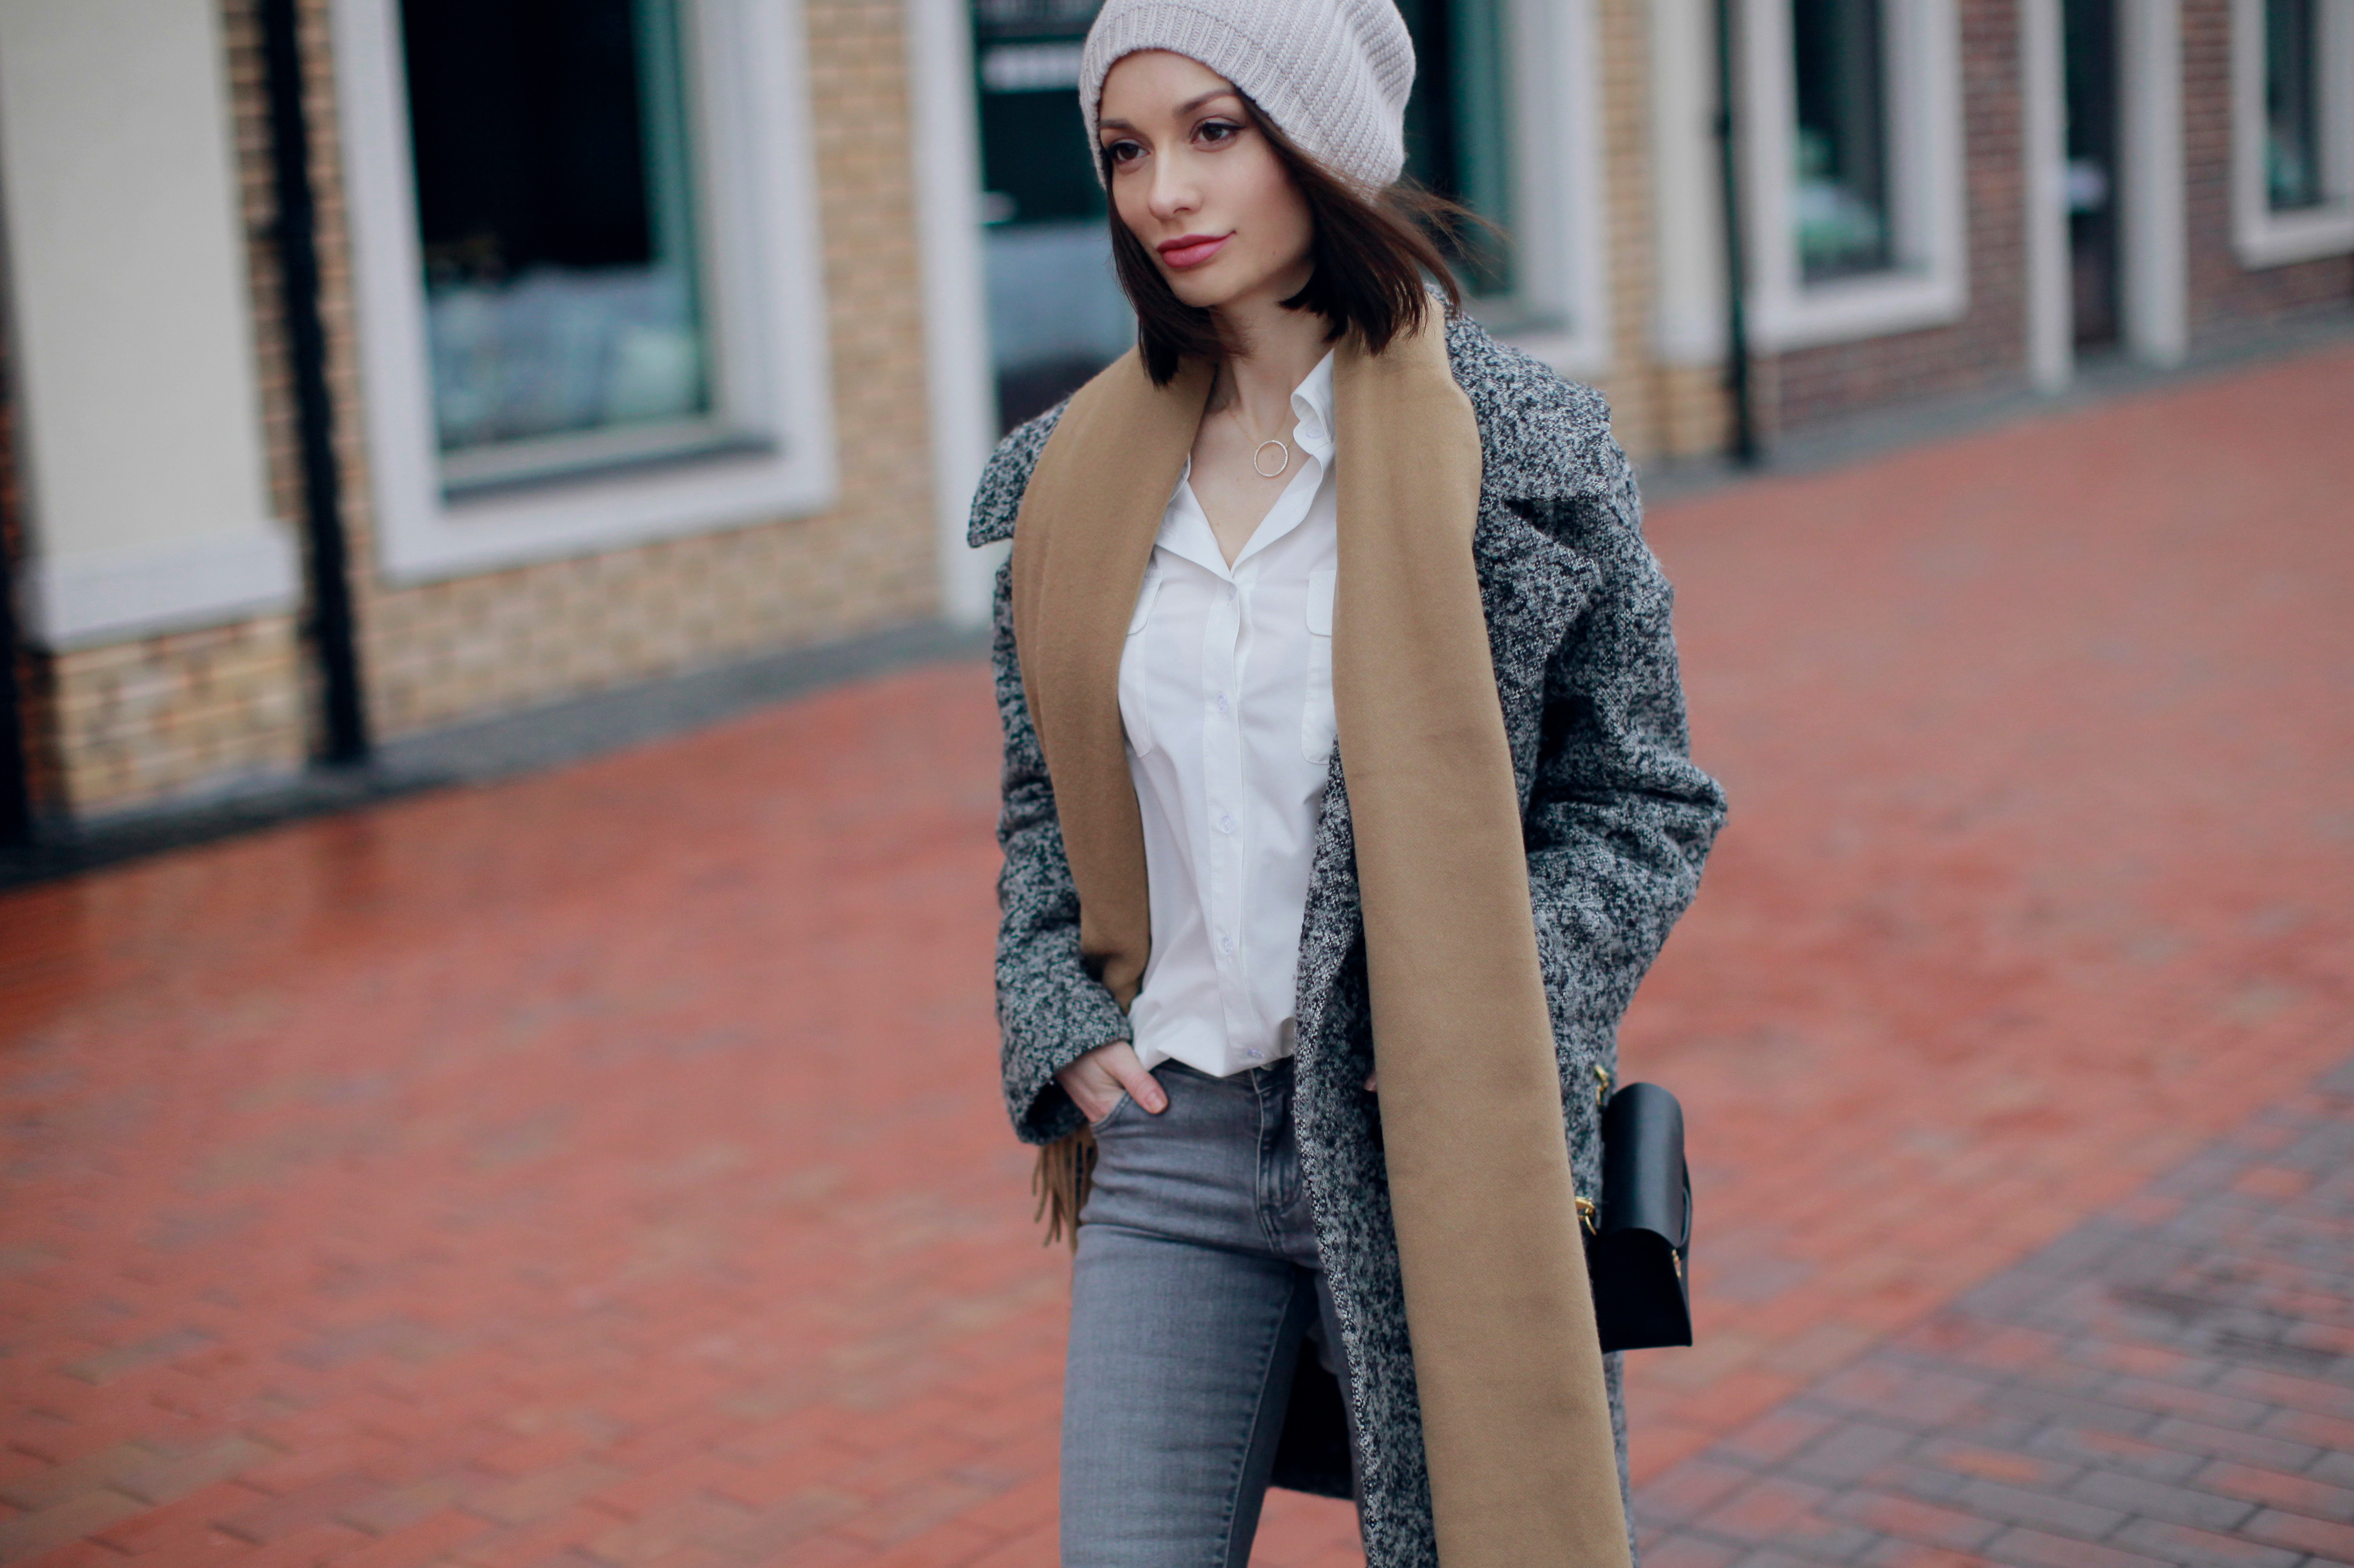 Sonya-Karamazova-outfit-ideas-for-cold-weather